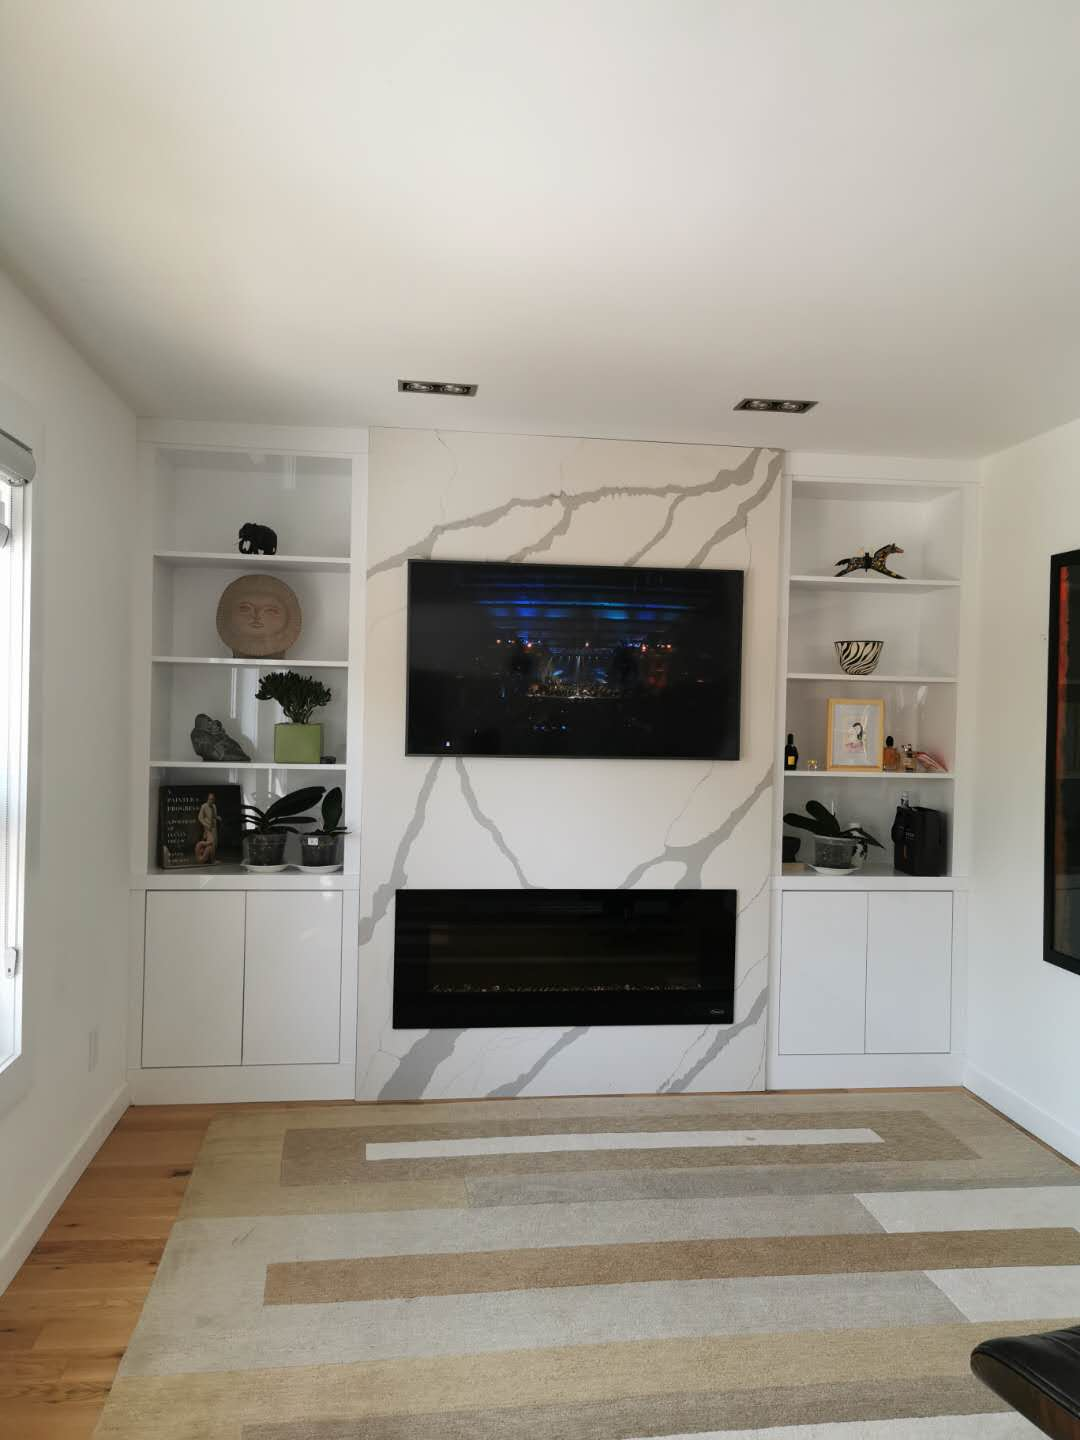 Contemporary design wall unit with quartz countertop in the middle